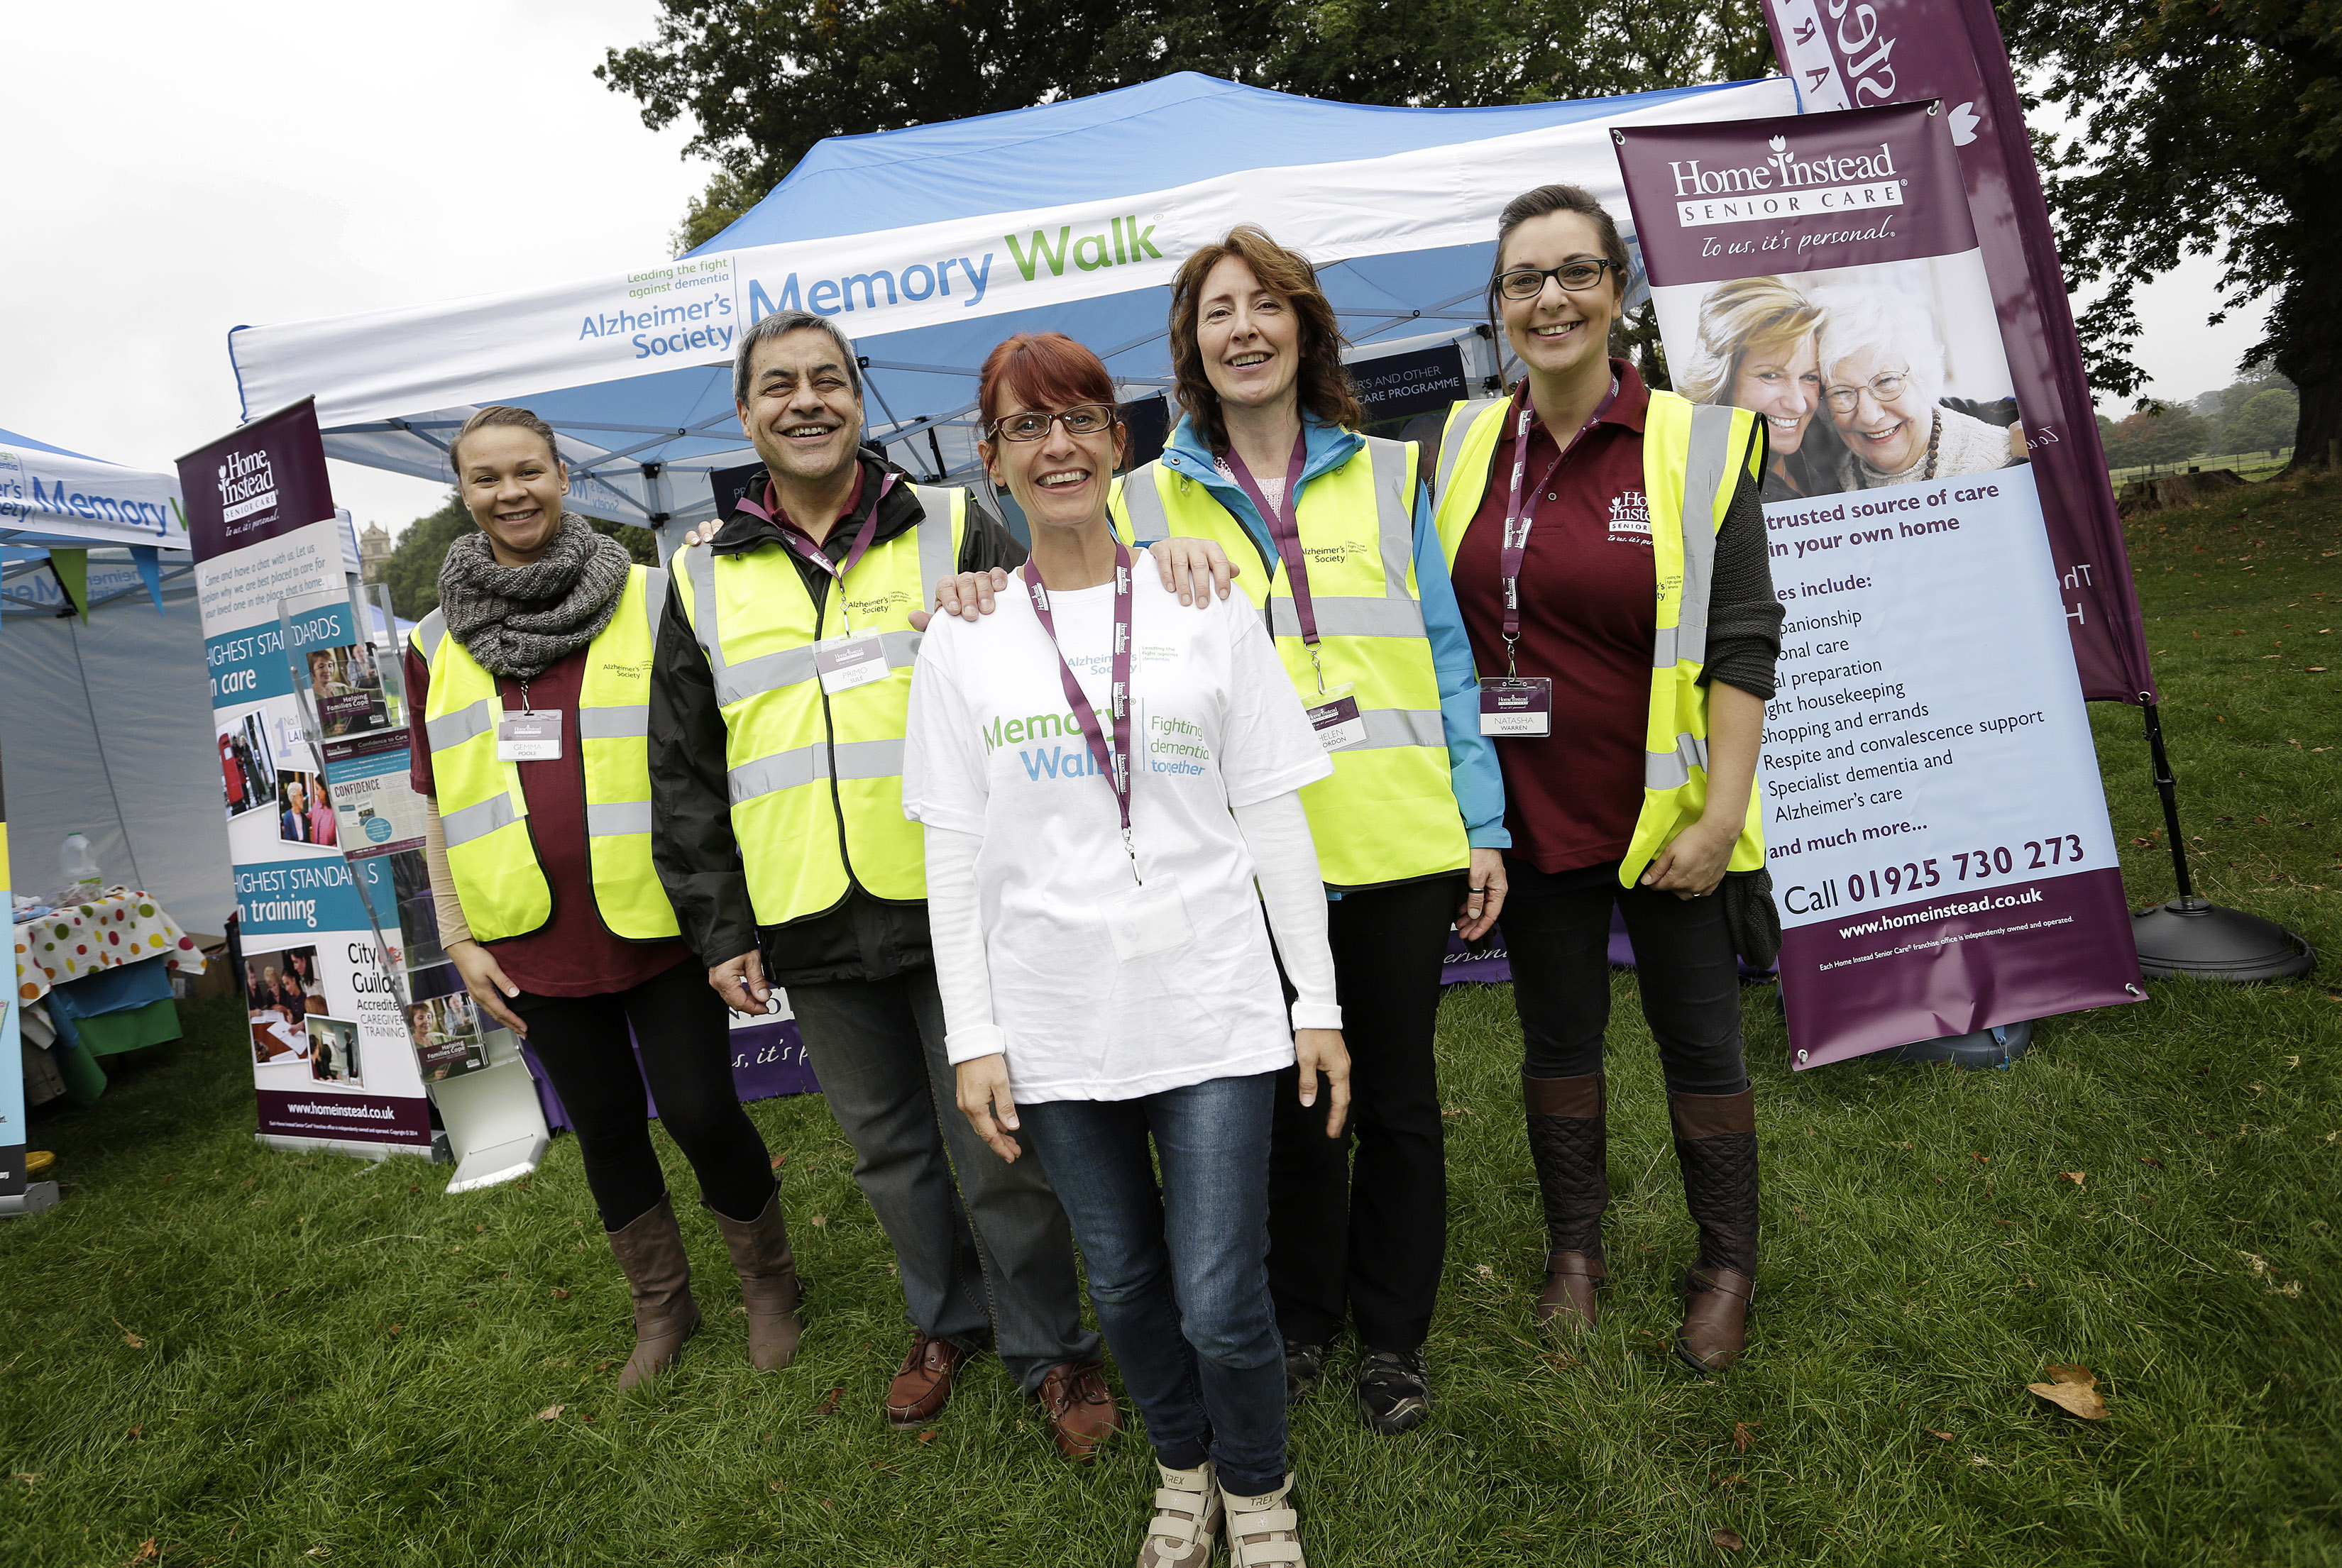 Home Instead team at the Nottingham Memory Walk